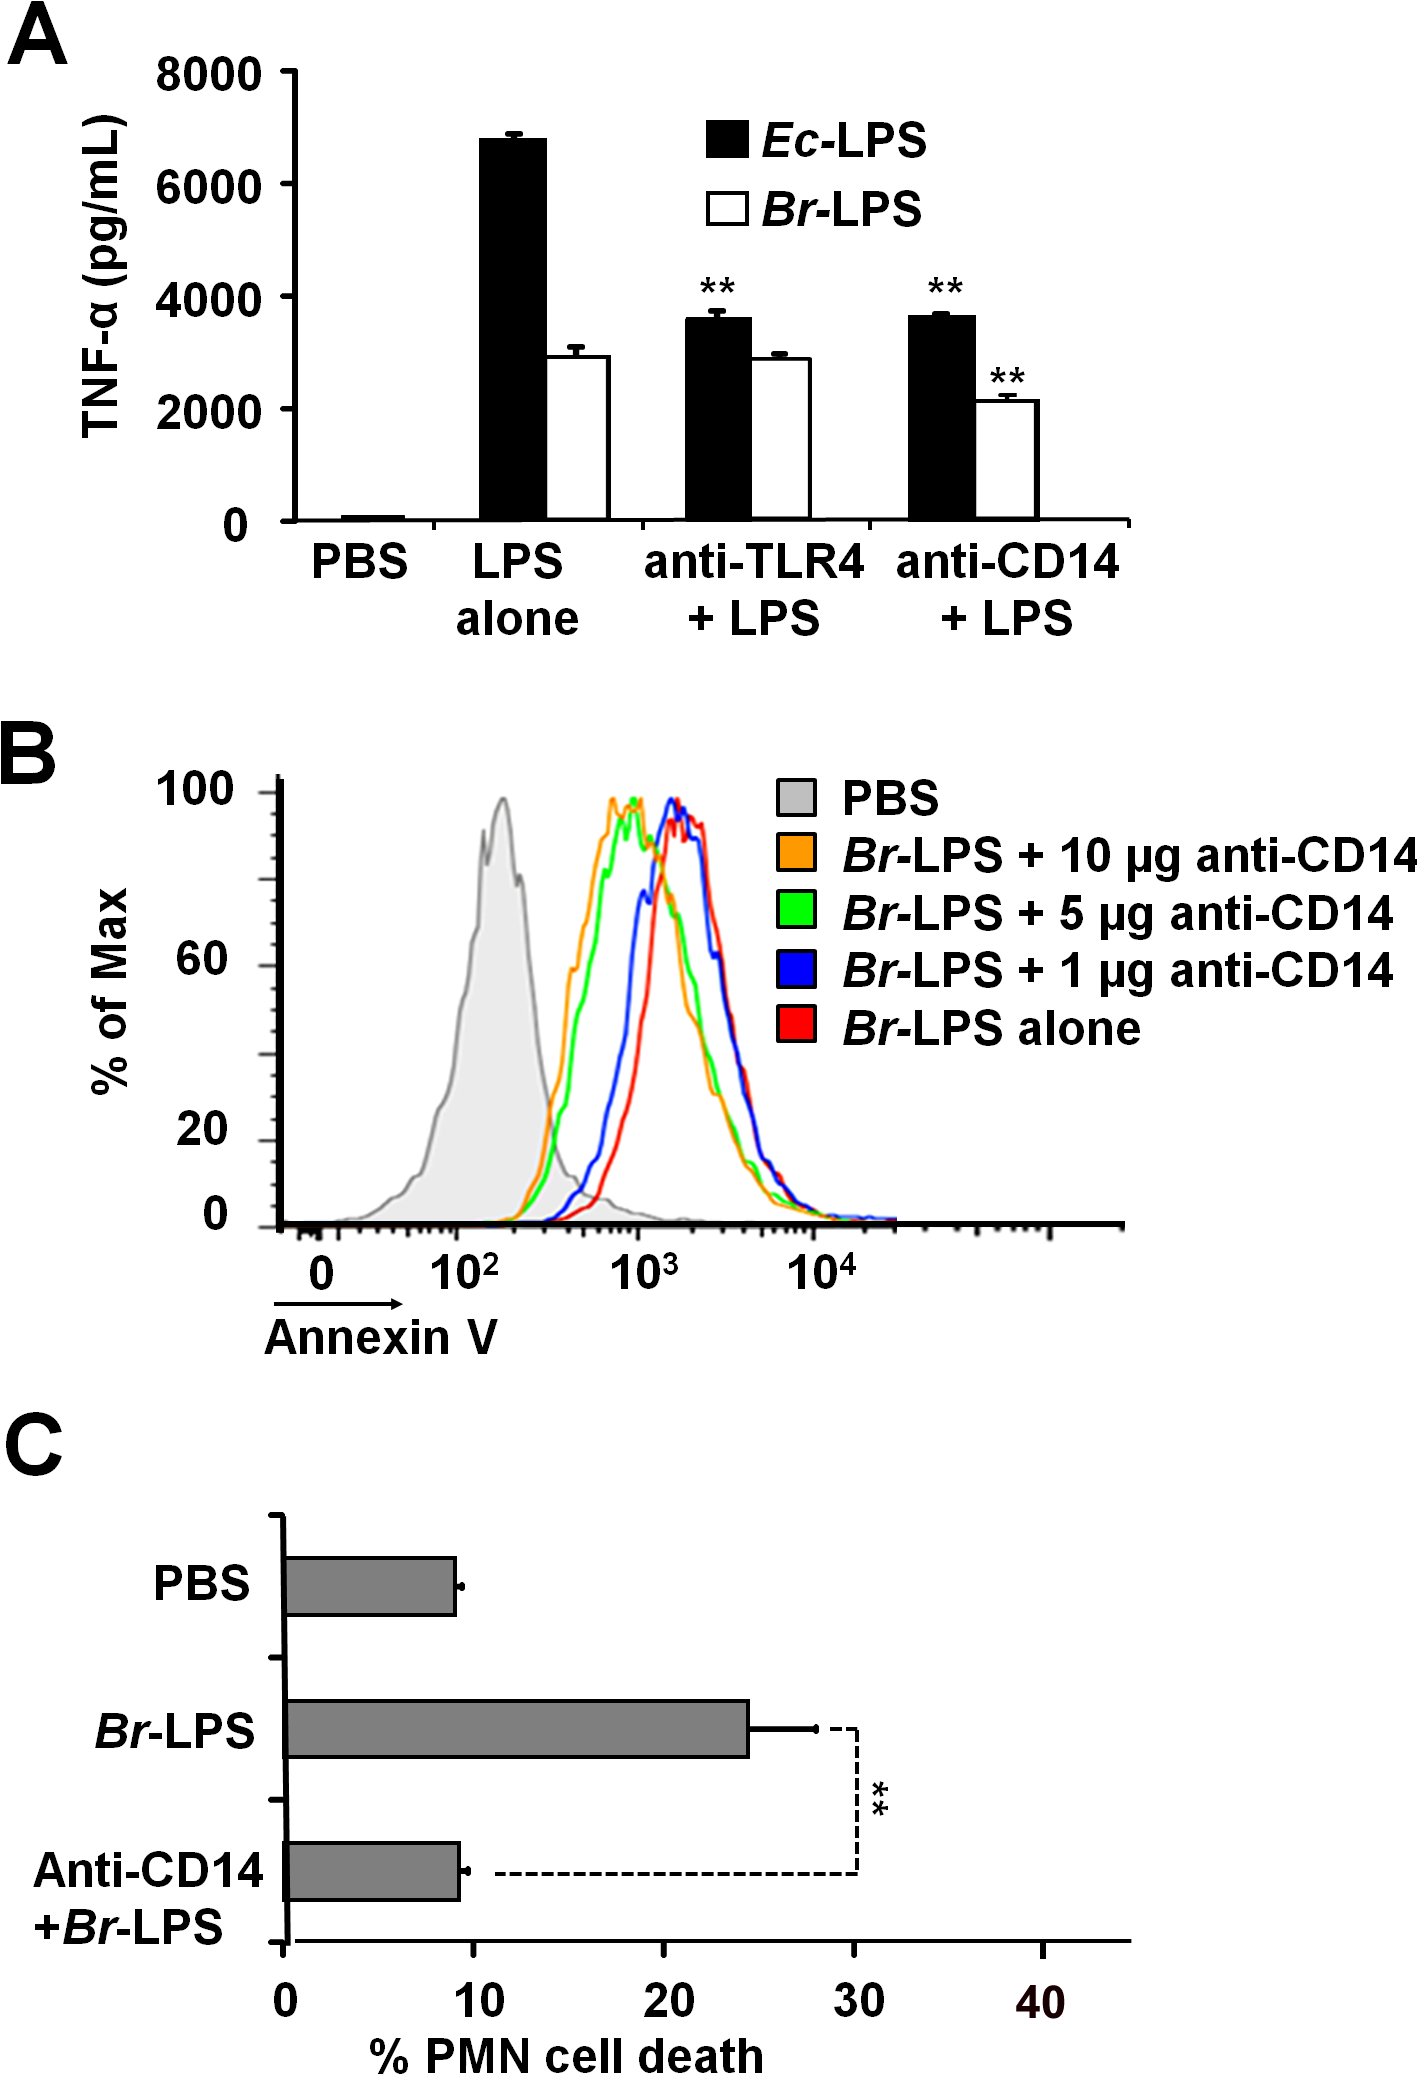 Neutralization of CD14 protects against <i>Br-</i>LPS-induced PMN cell death.